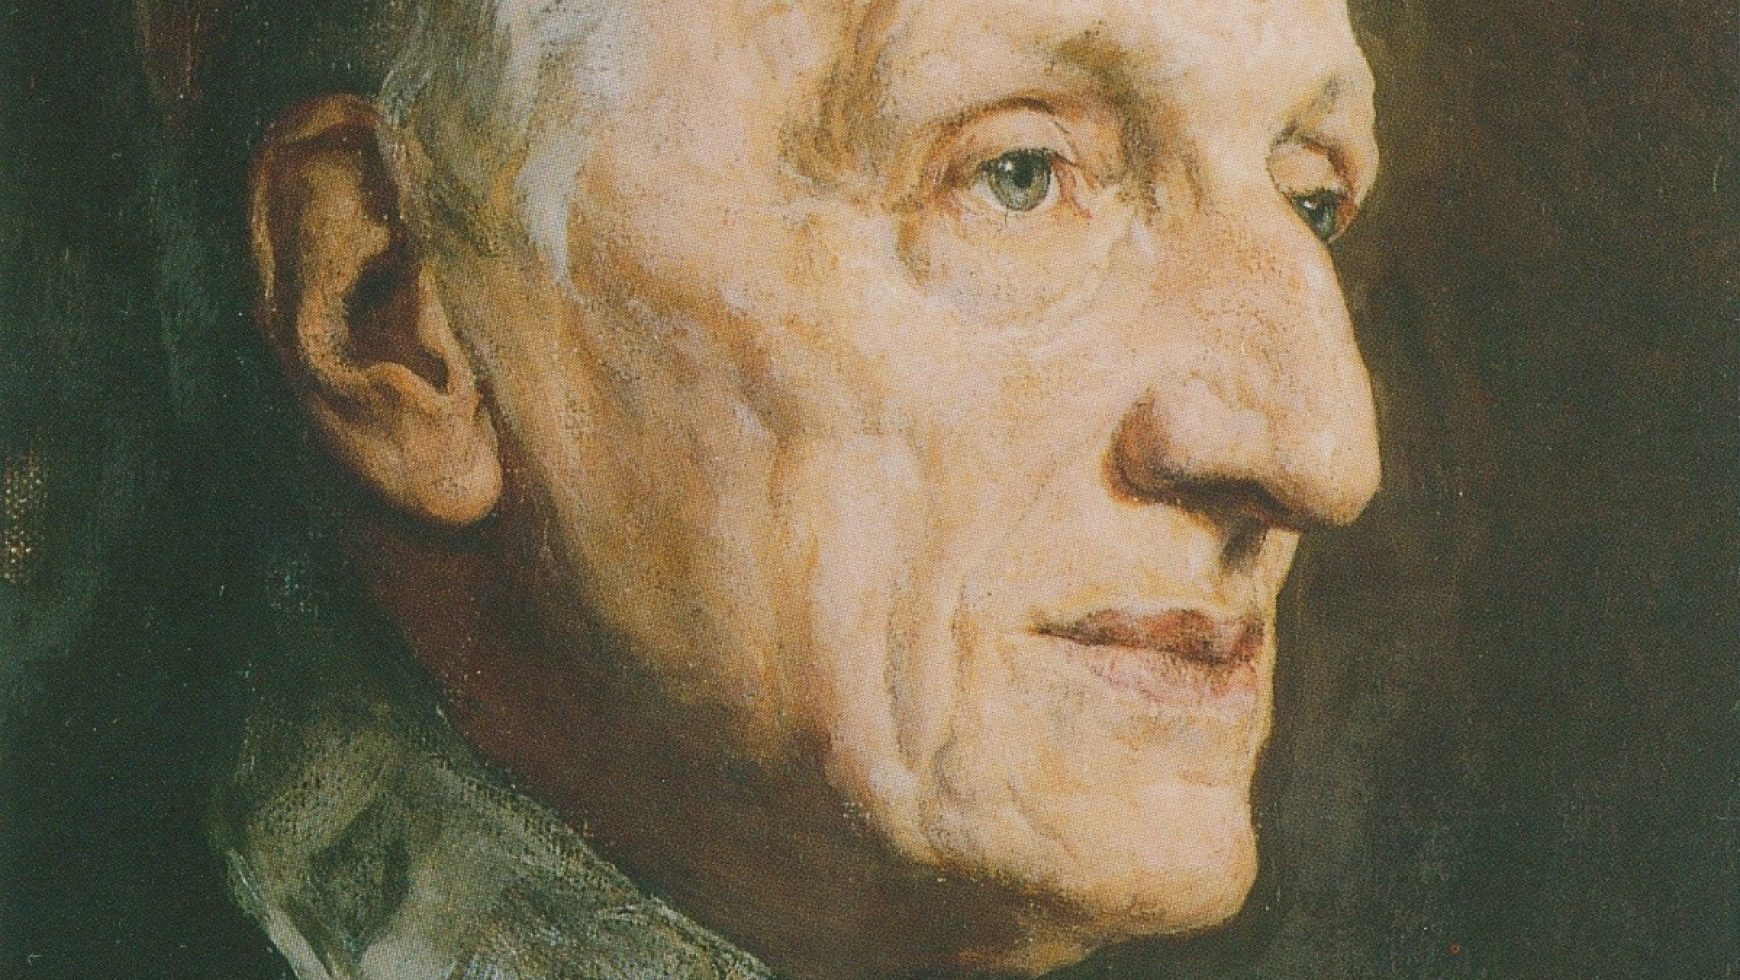 Abuse of authority by College authorities ~ Cardinal Newman